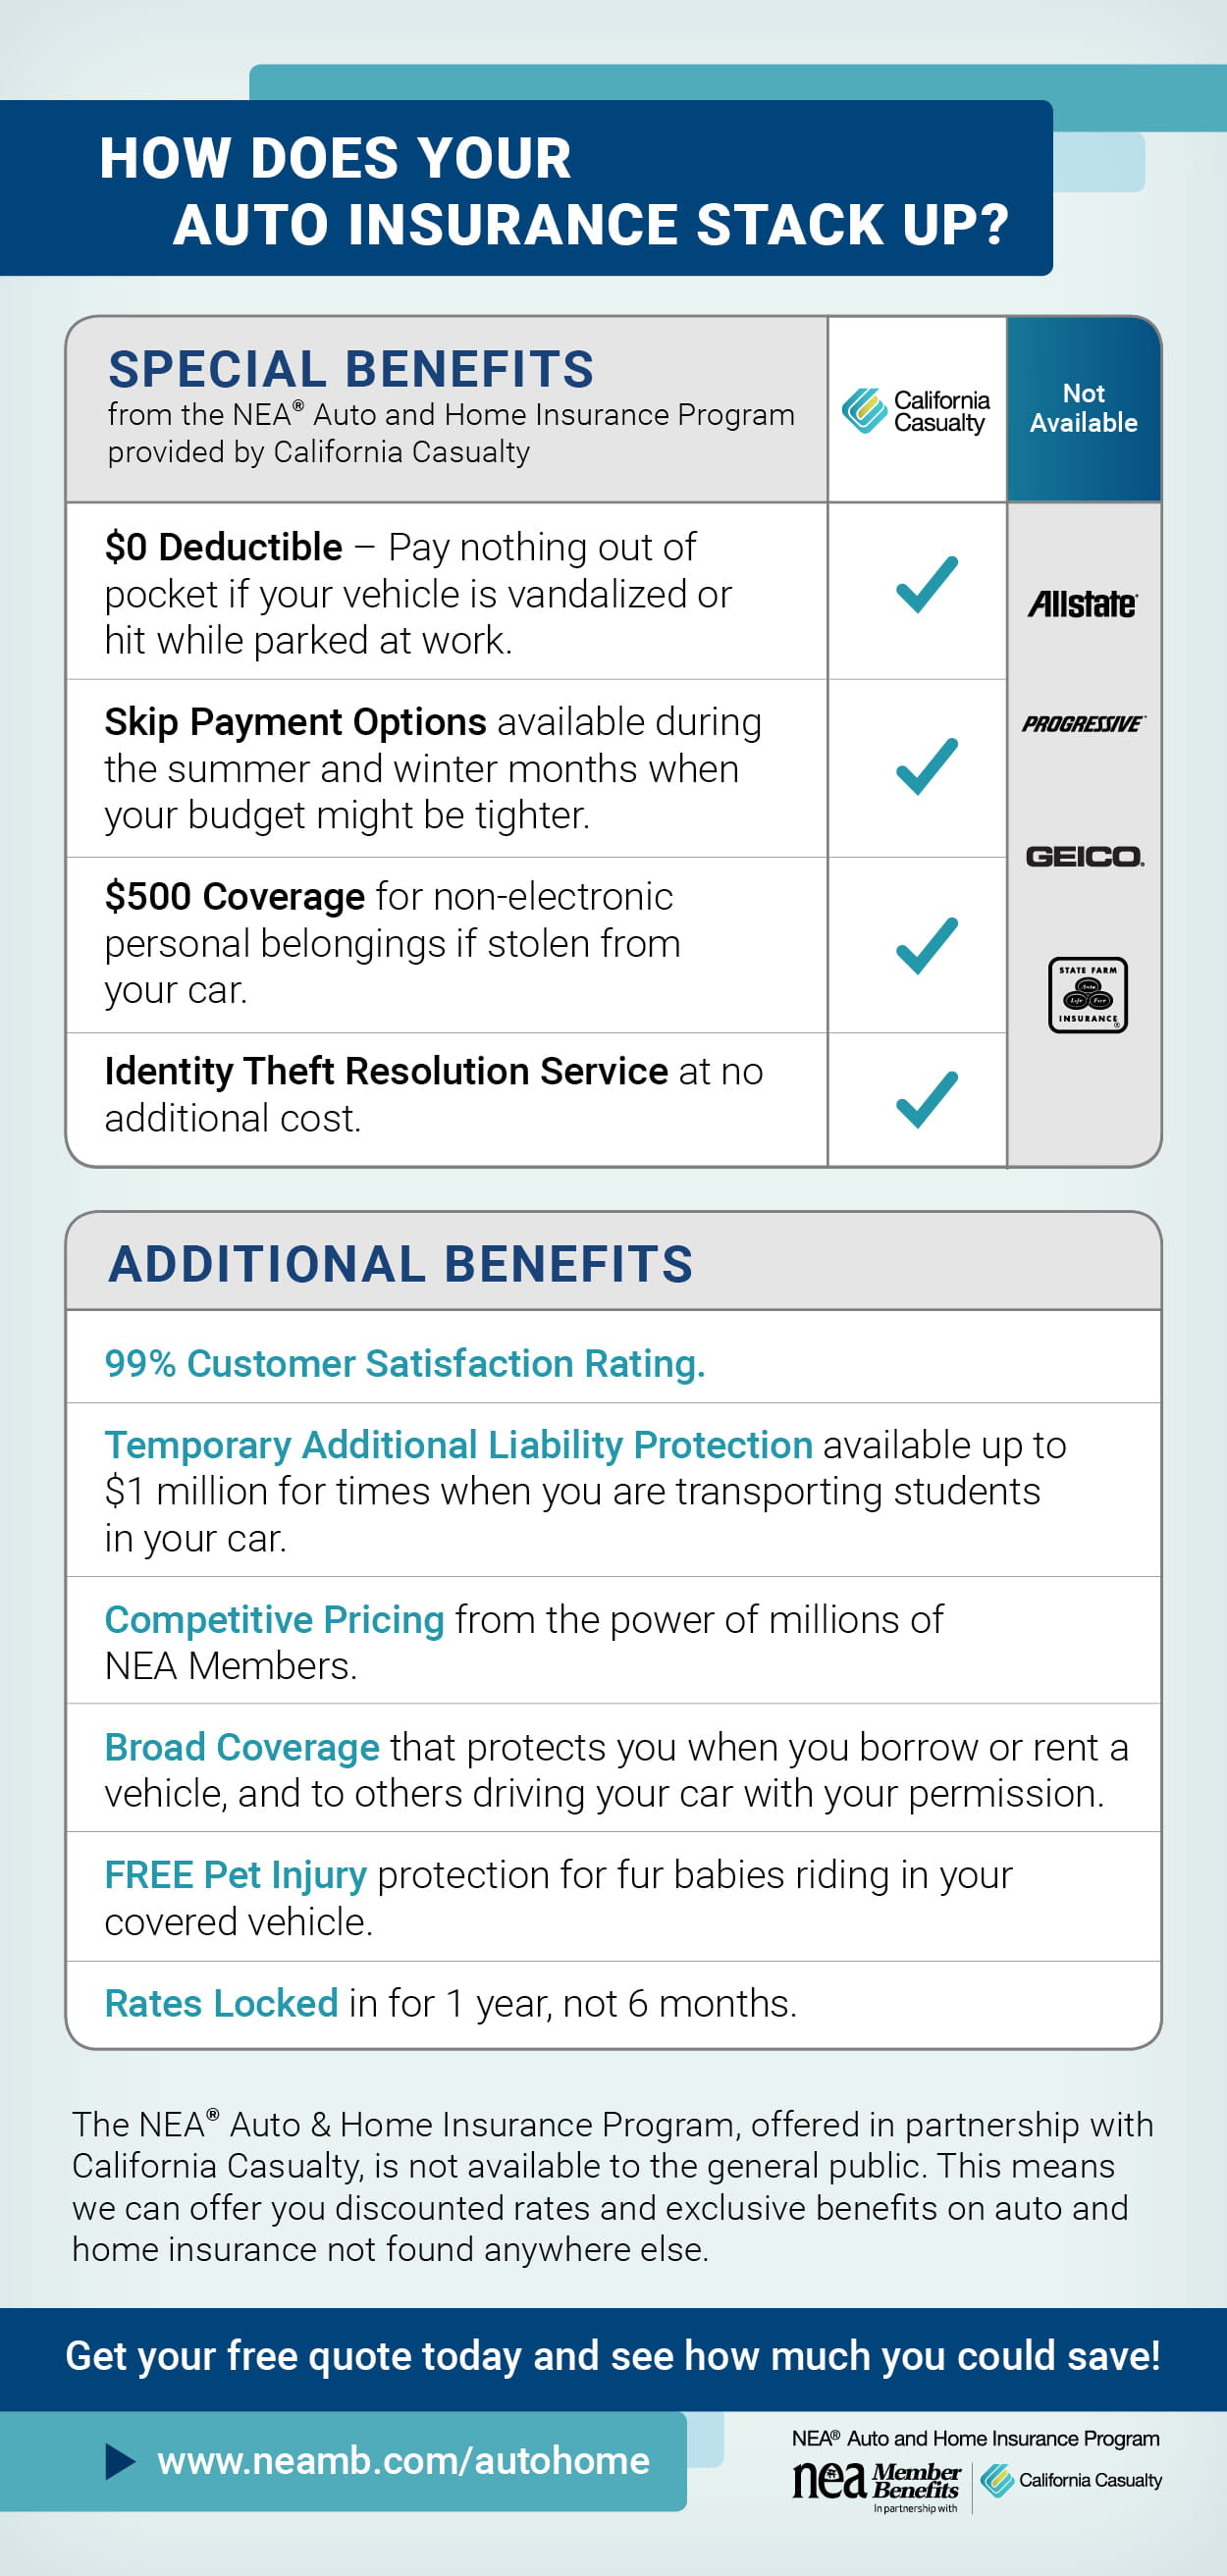 NEA Auto & Home Insurance Program - How Does Your Auto Insurance Stack Up